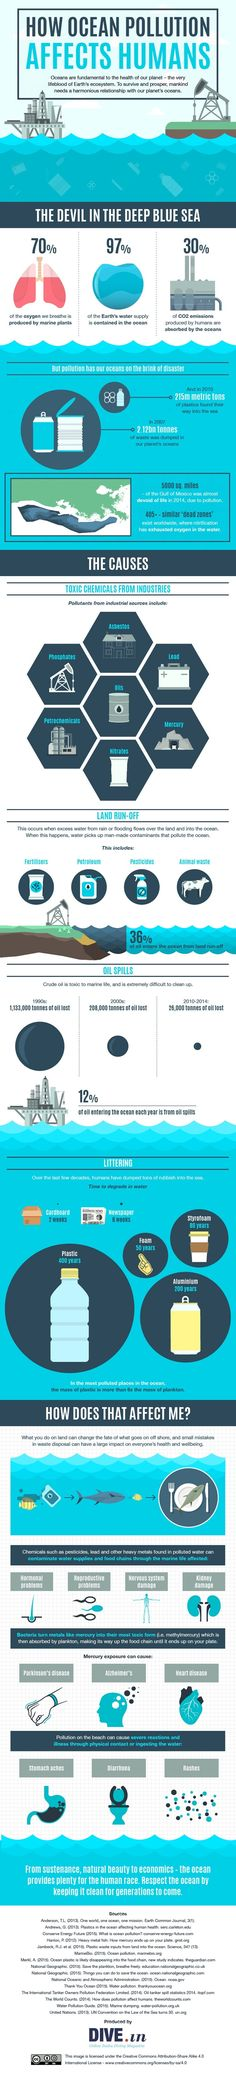 Check out this infographic from DIVE.in, an online scuba diving magazine, to learn how ocean pollution hurts humans too and not just marine life. Plastic pollution